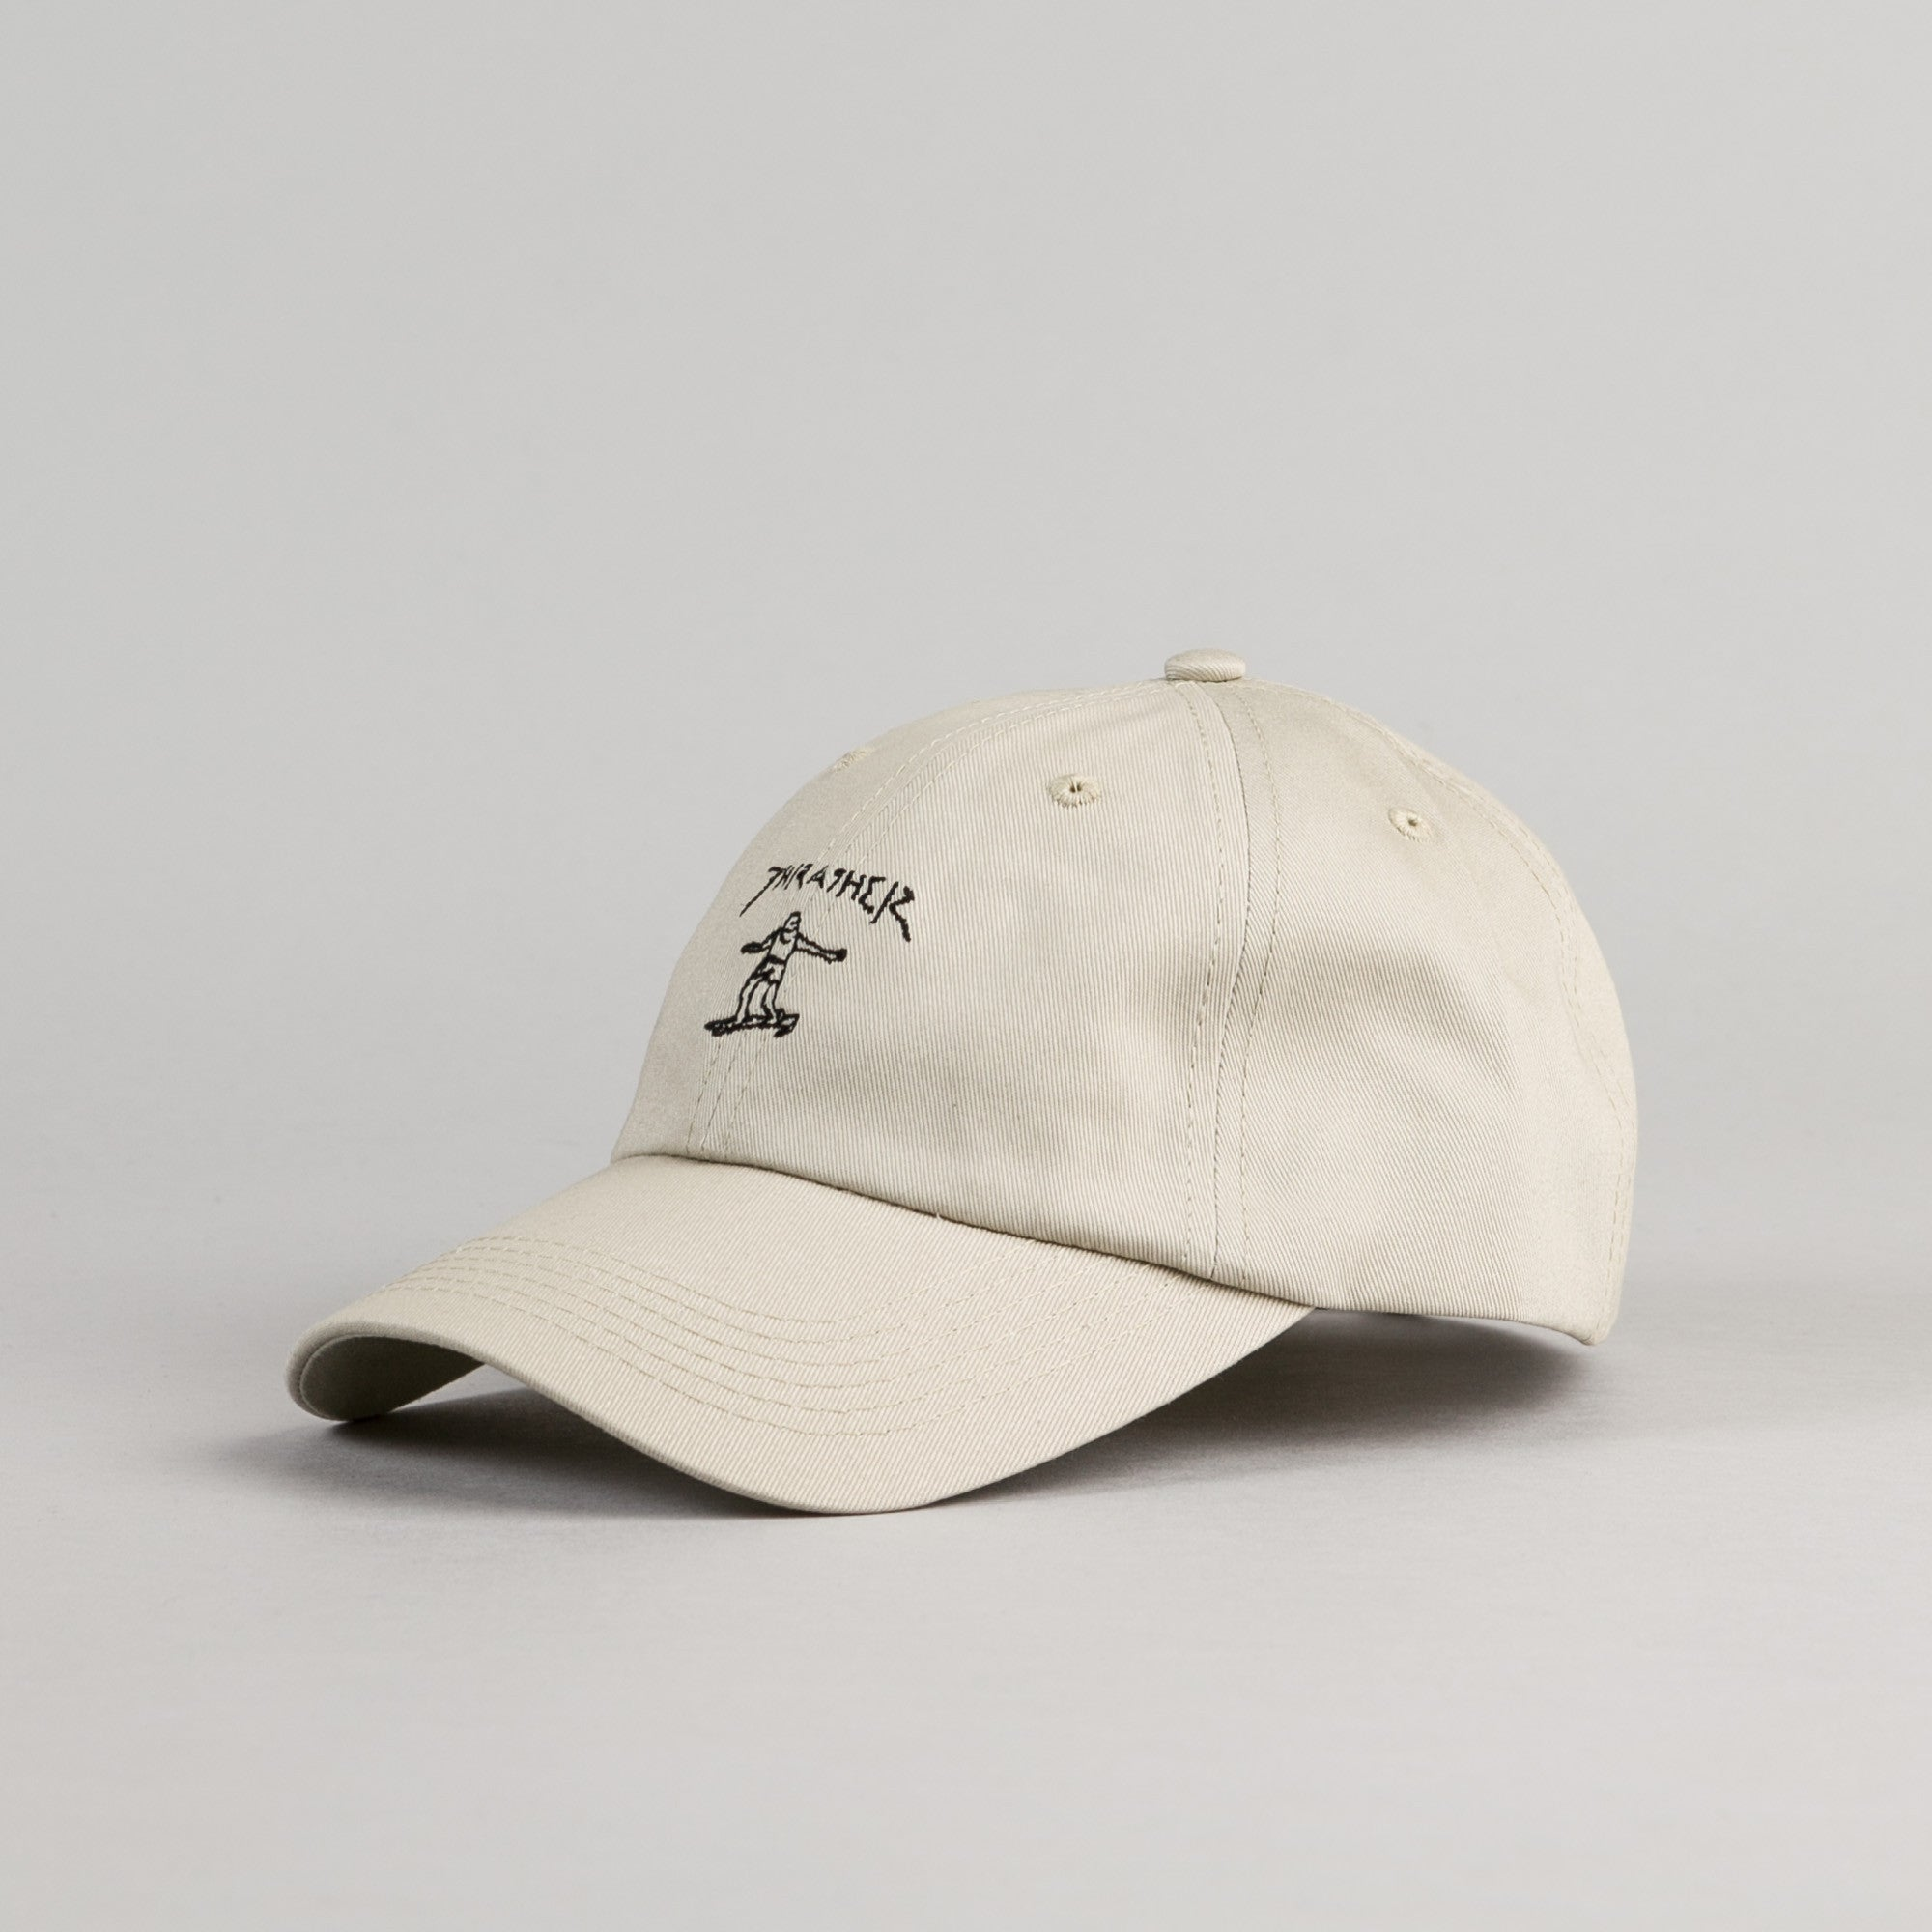 Thrasher Gonz Old Timer Cap - Tan / Black